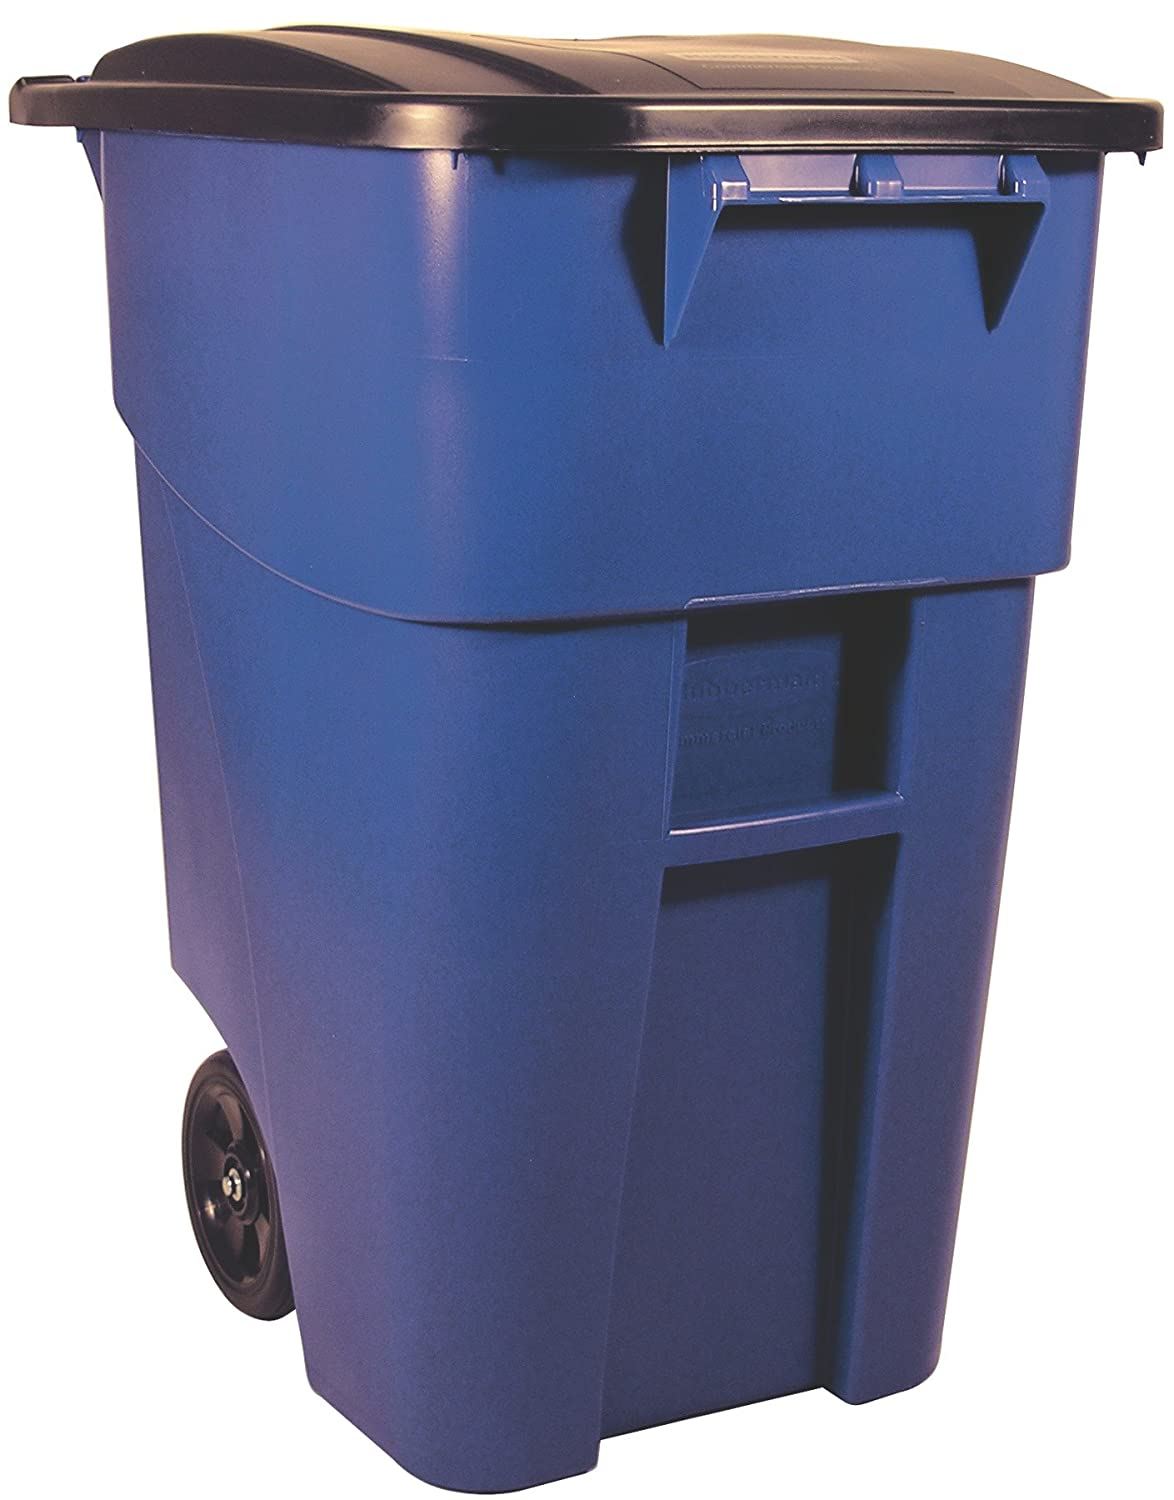 Top 10 Best Trash Containers Reviews With Wheels 2016 2017 On